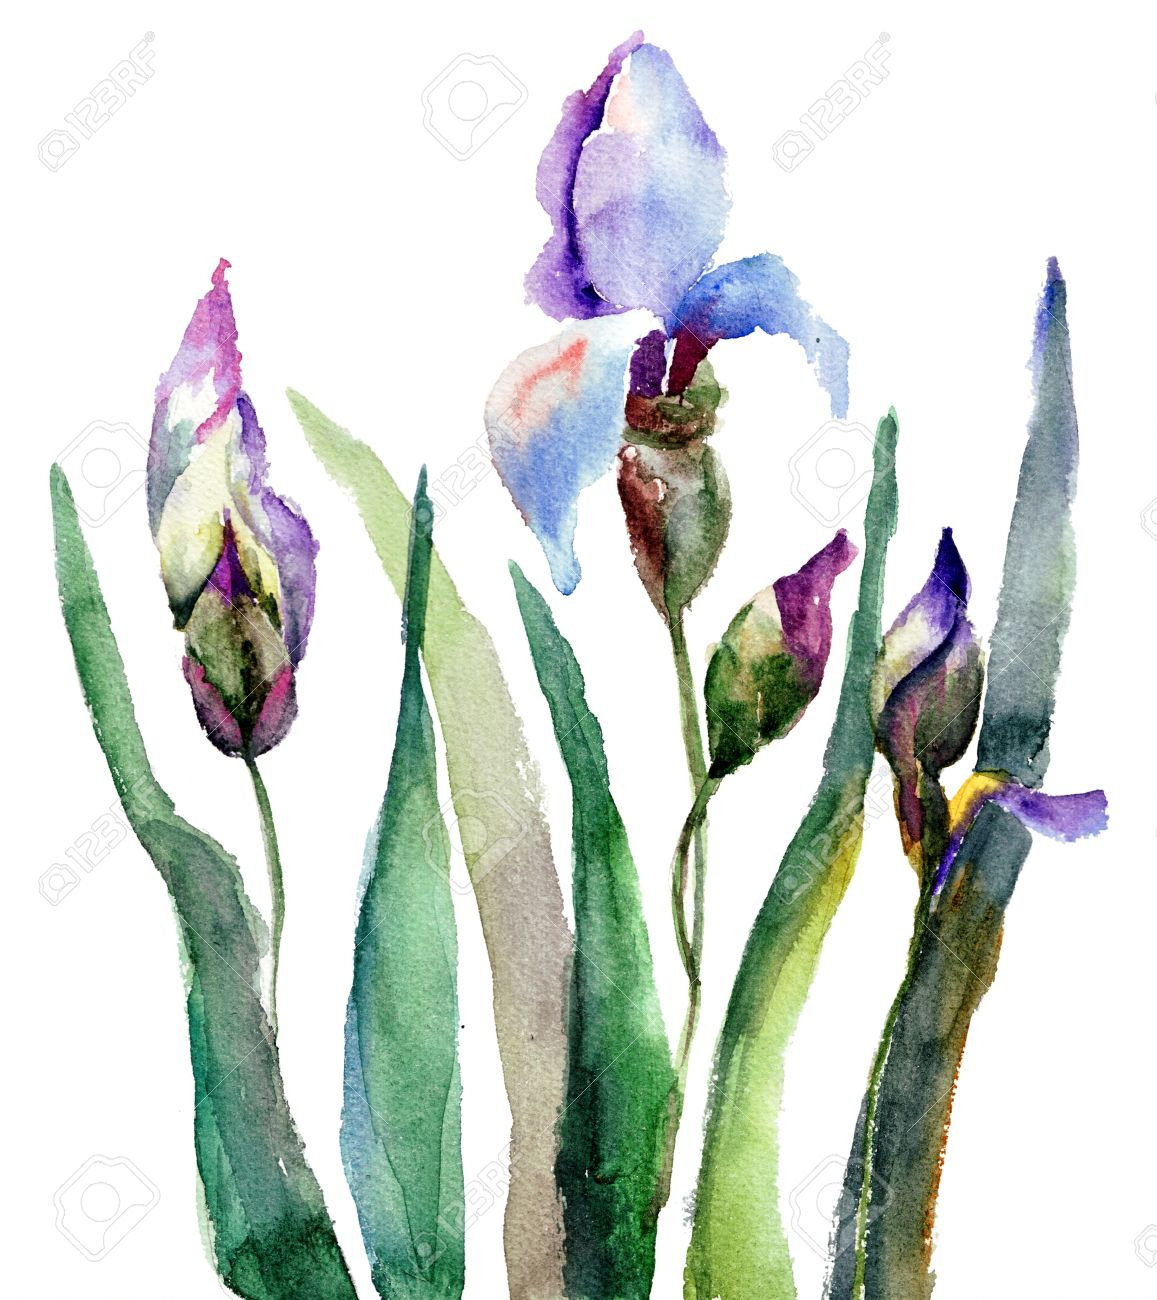 iris flower images  stock pictures. royalty free iris flower, Beautiful flower